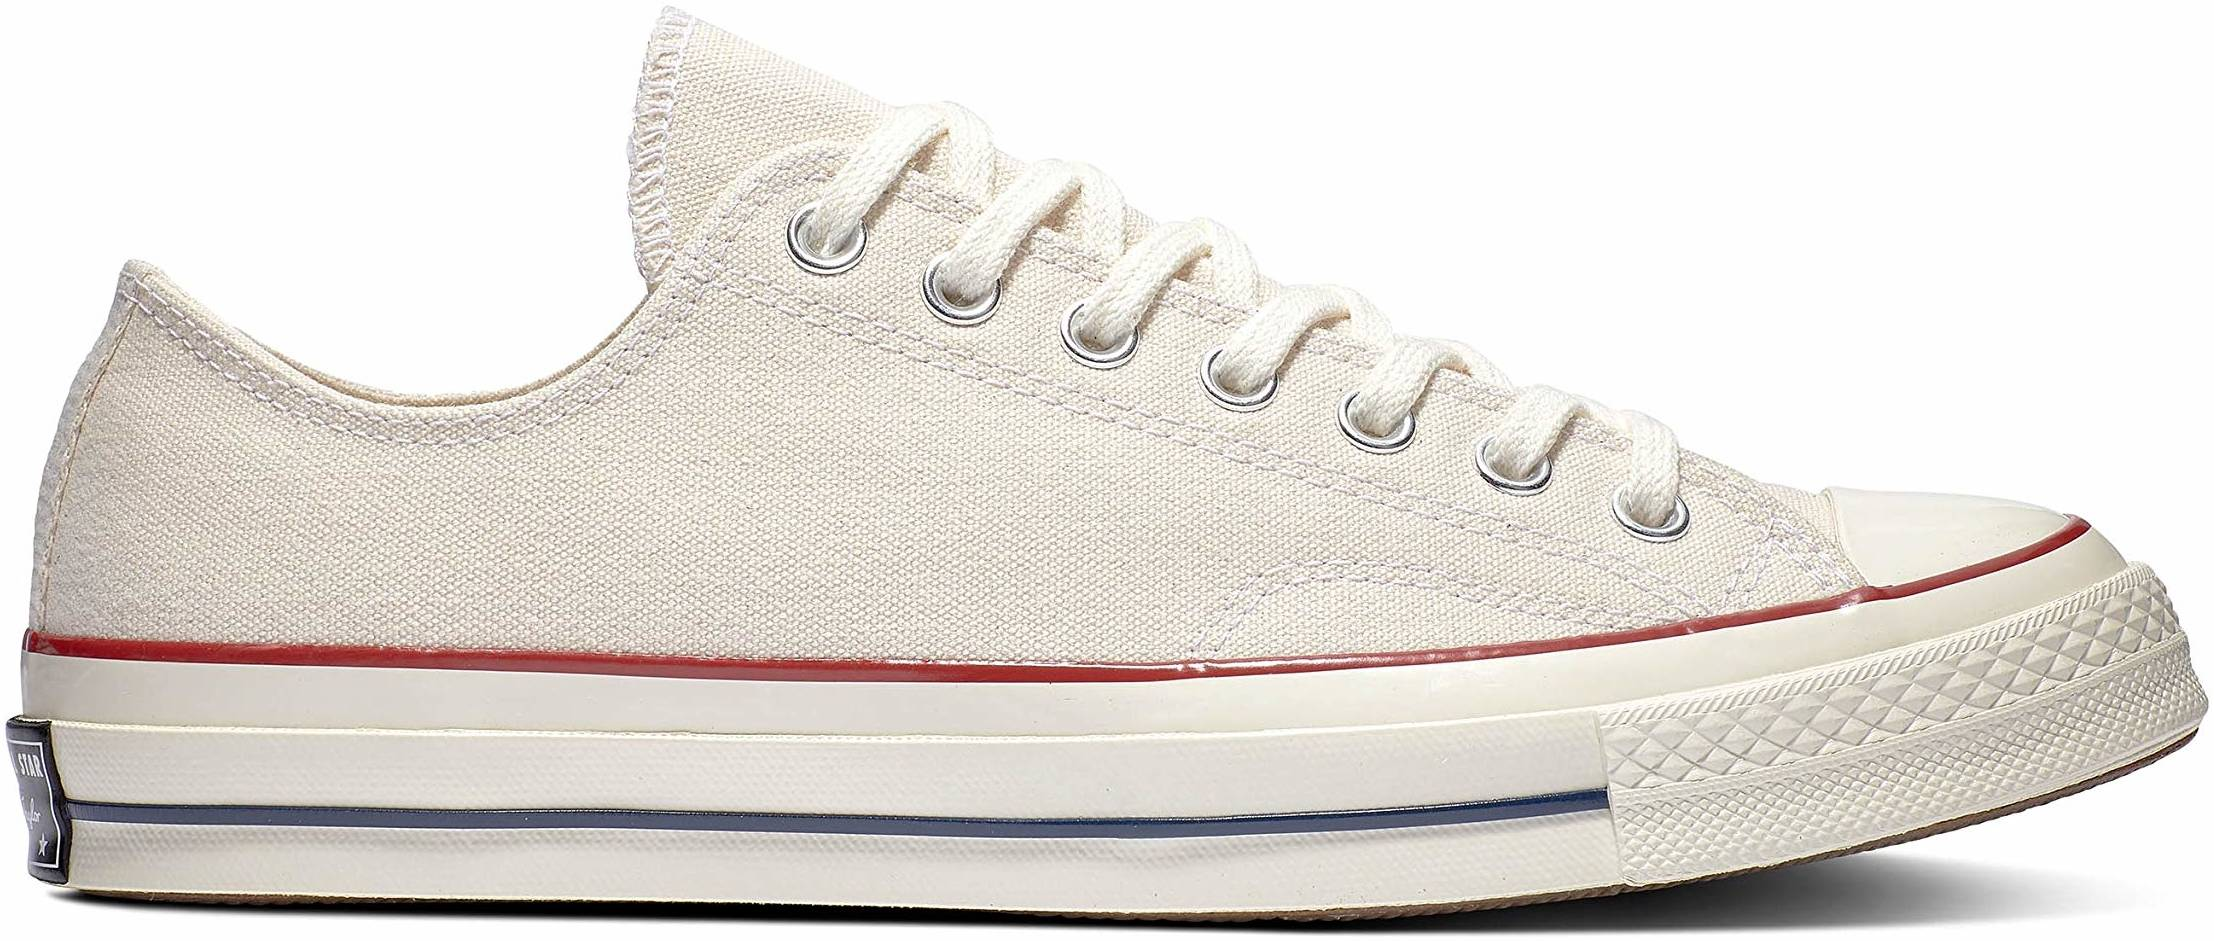 Converse Chuck 70 Low Top sneakers in 8 colors (only $53)   RunRepeat